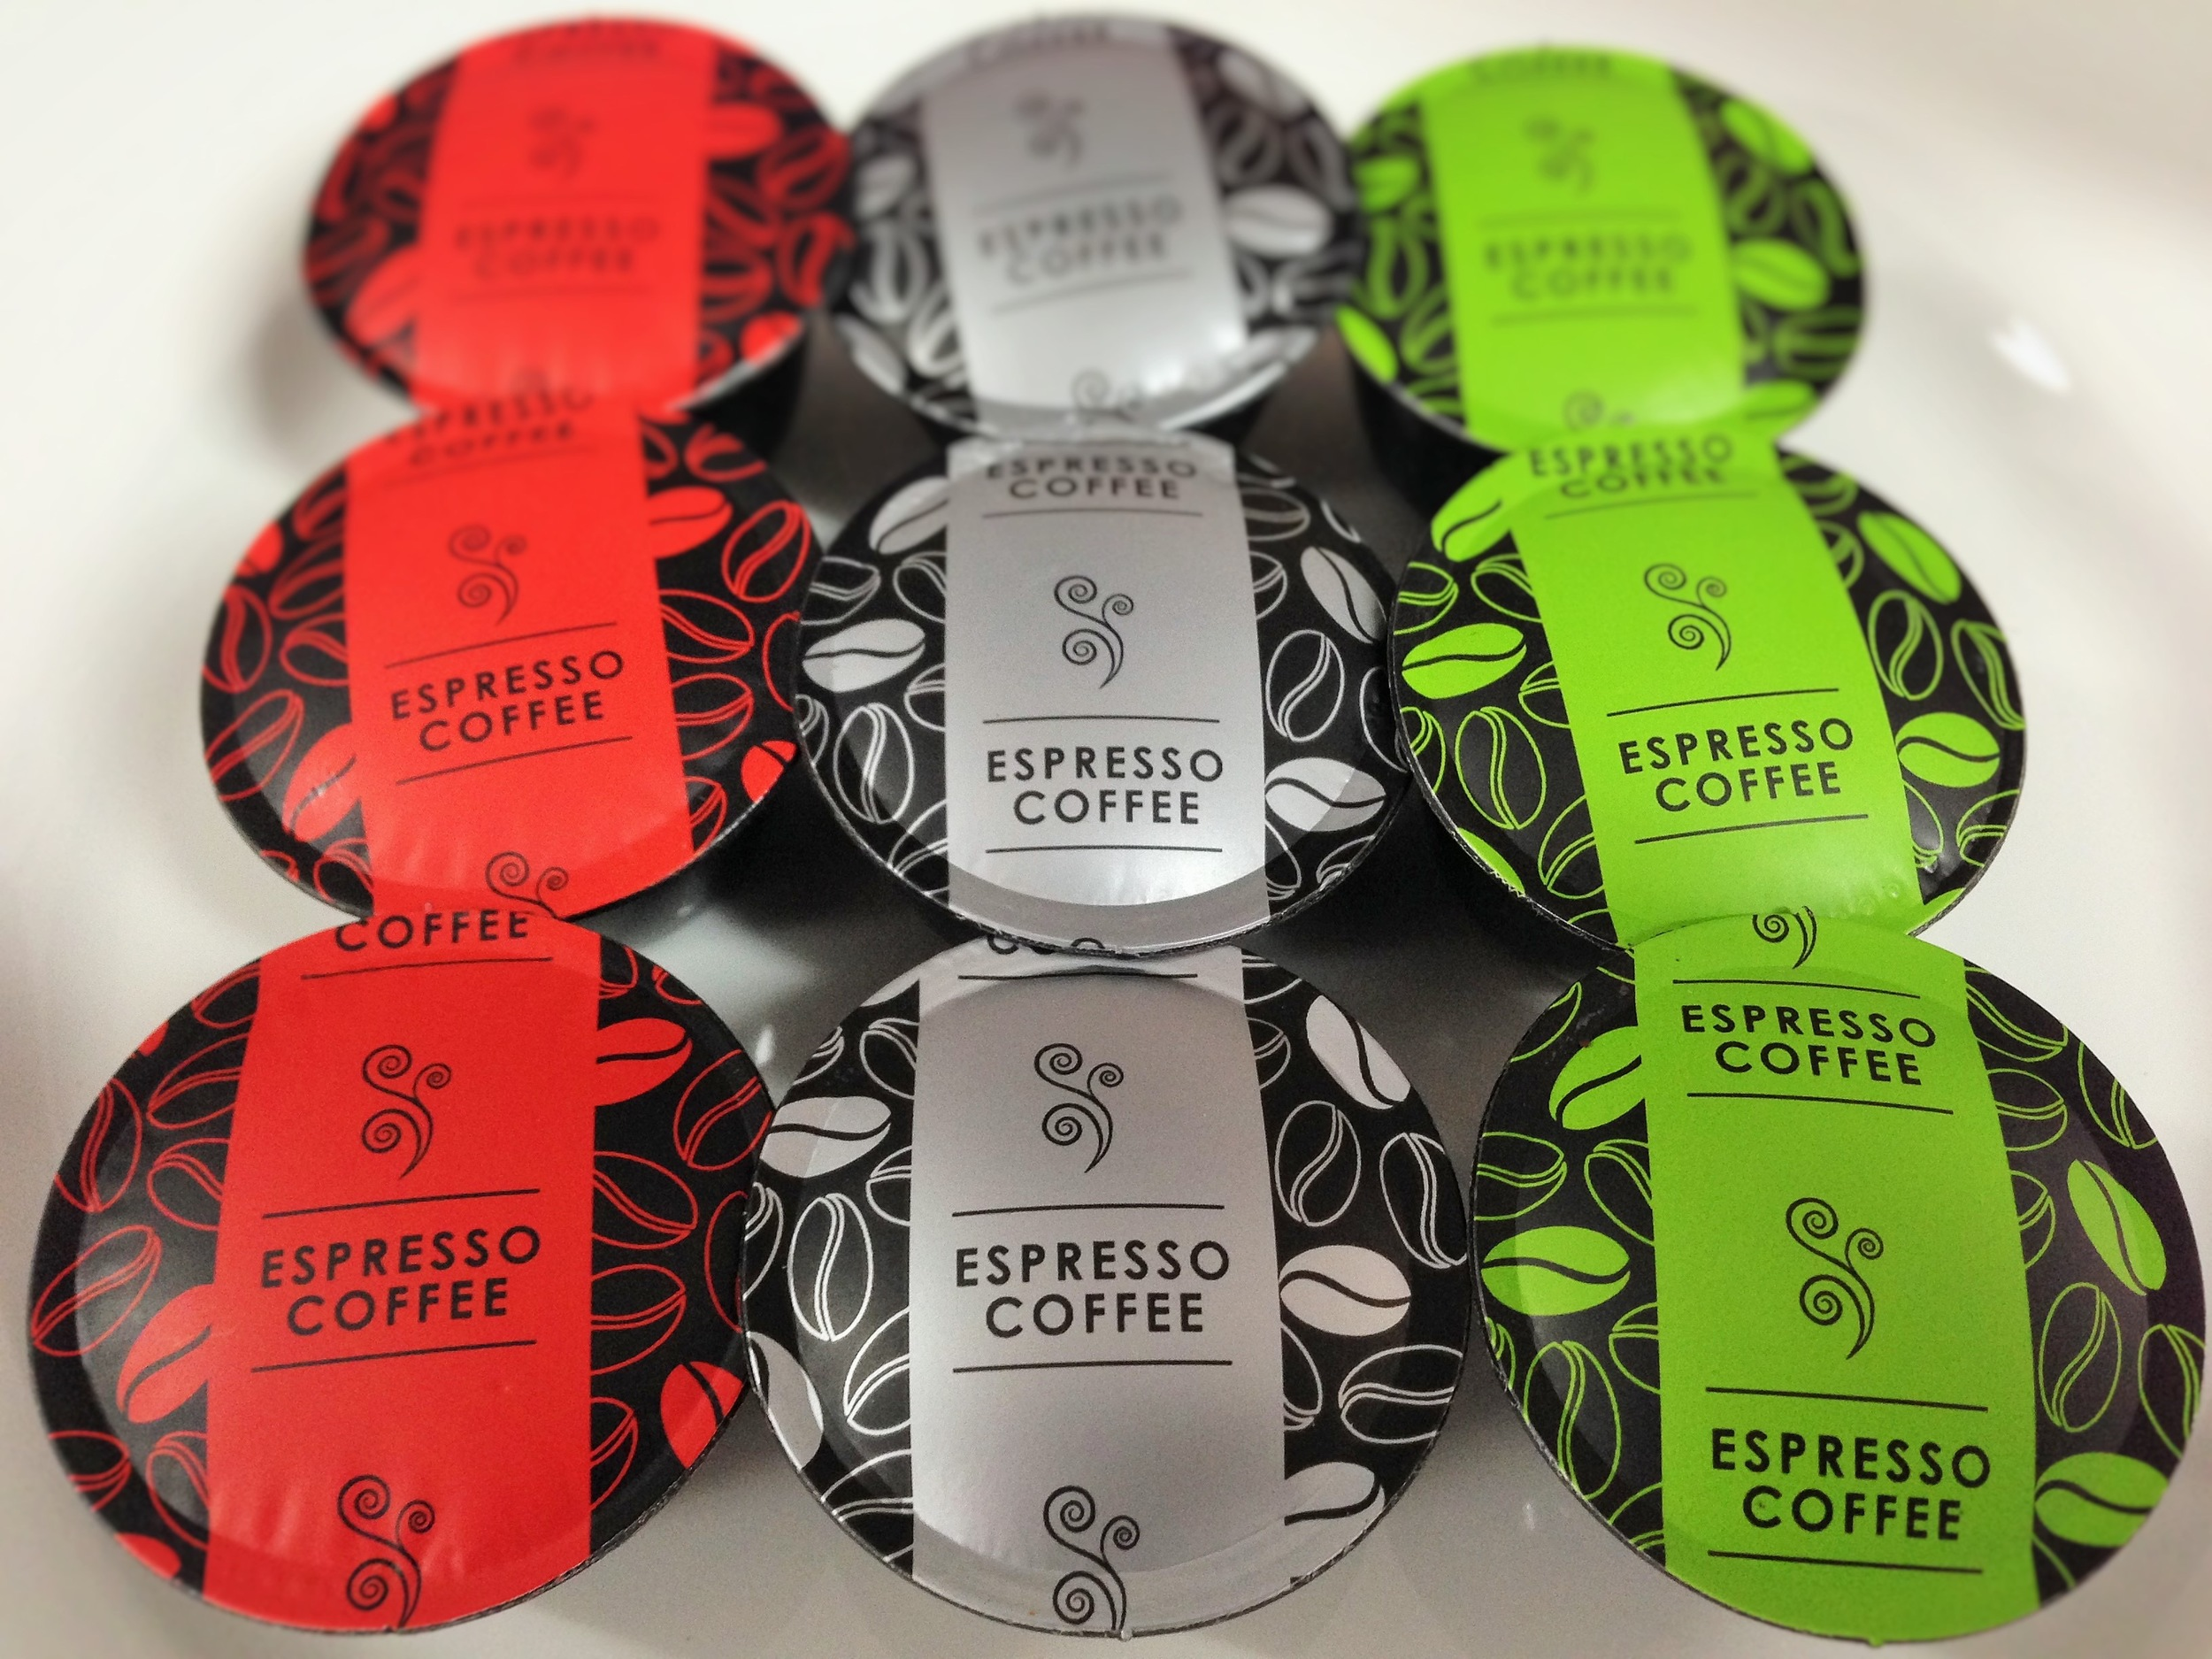 South Ground - We offer our Premium Estate, Cafe Espresso and PNG Organic coffee in Lavazza Blue compatible Coffee Capsules